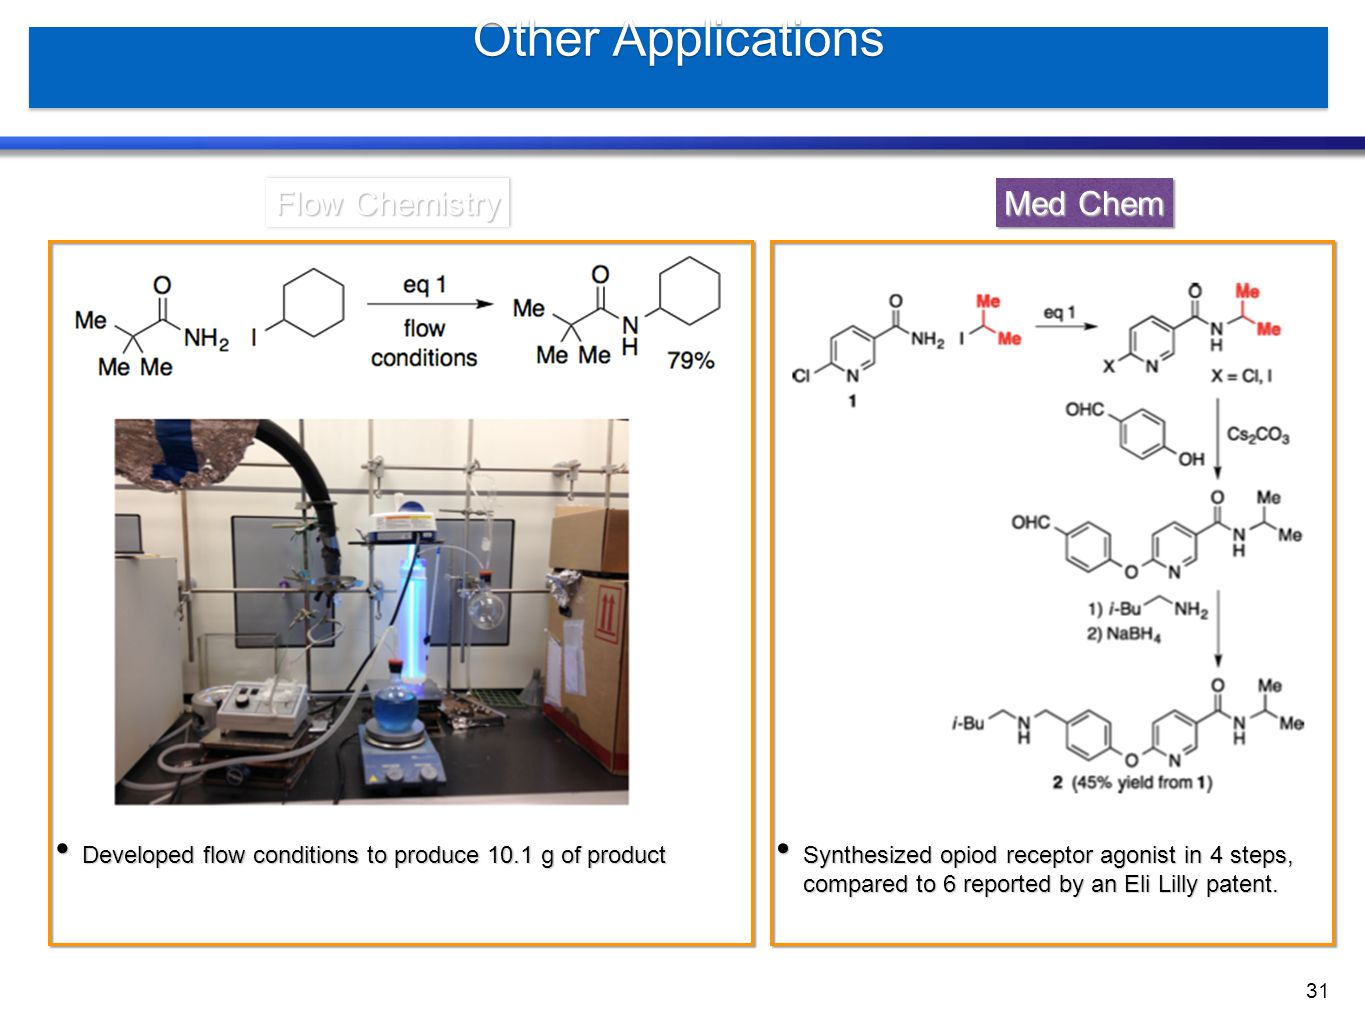 Other Applications Flow Chemistry Med Chem